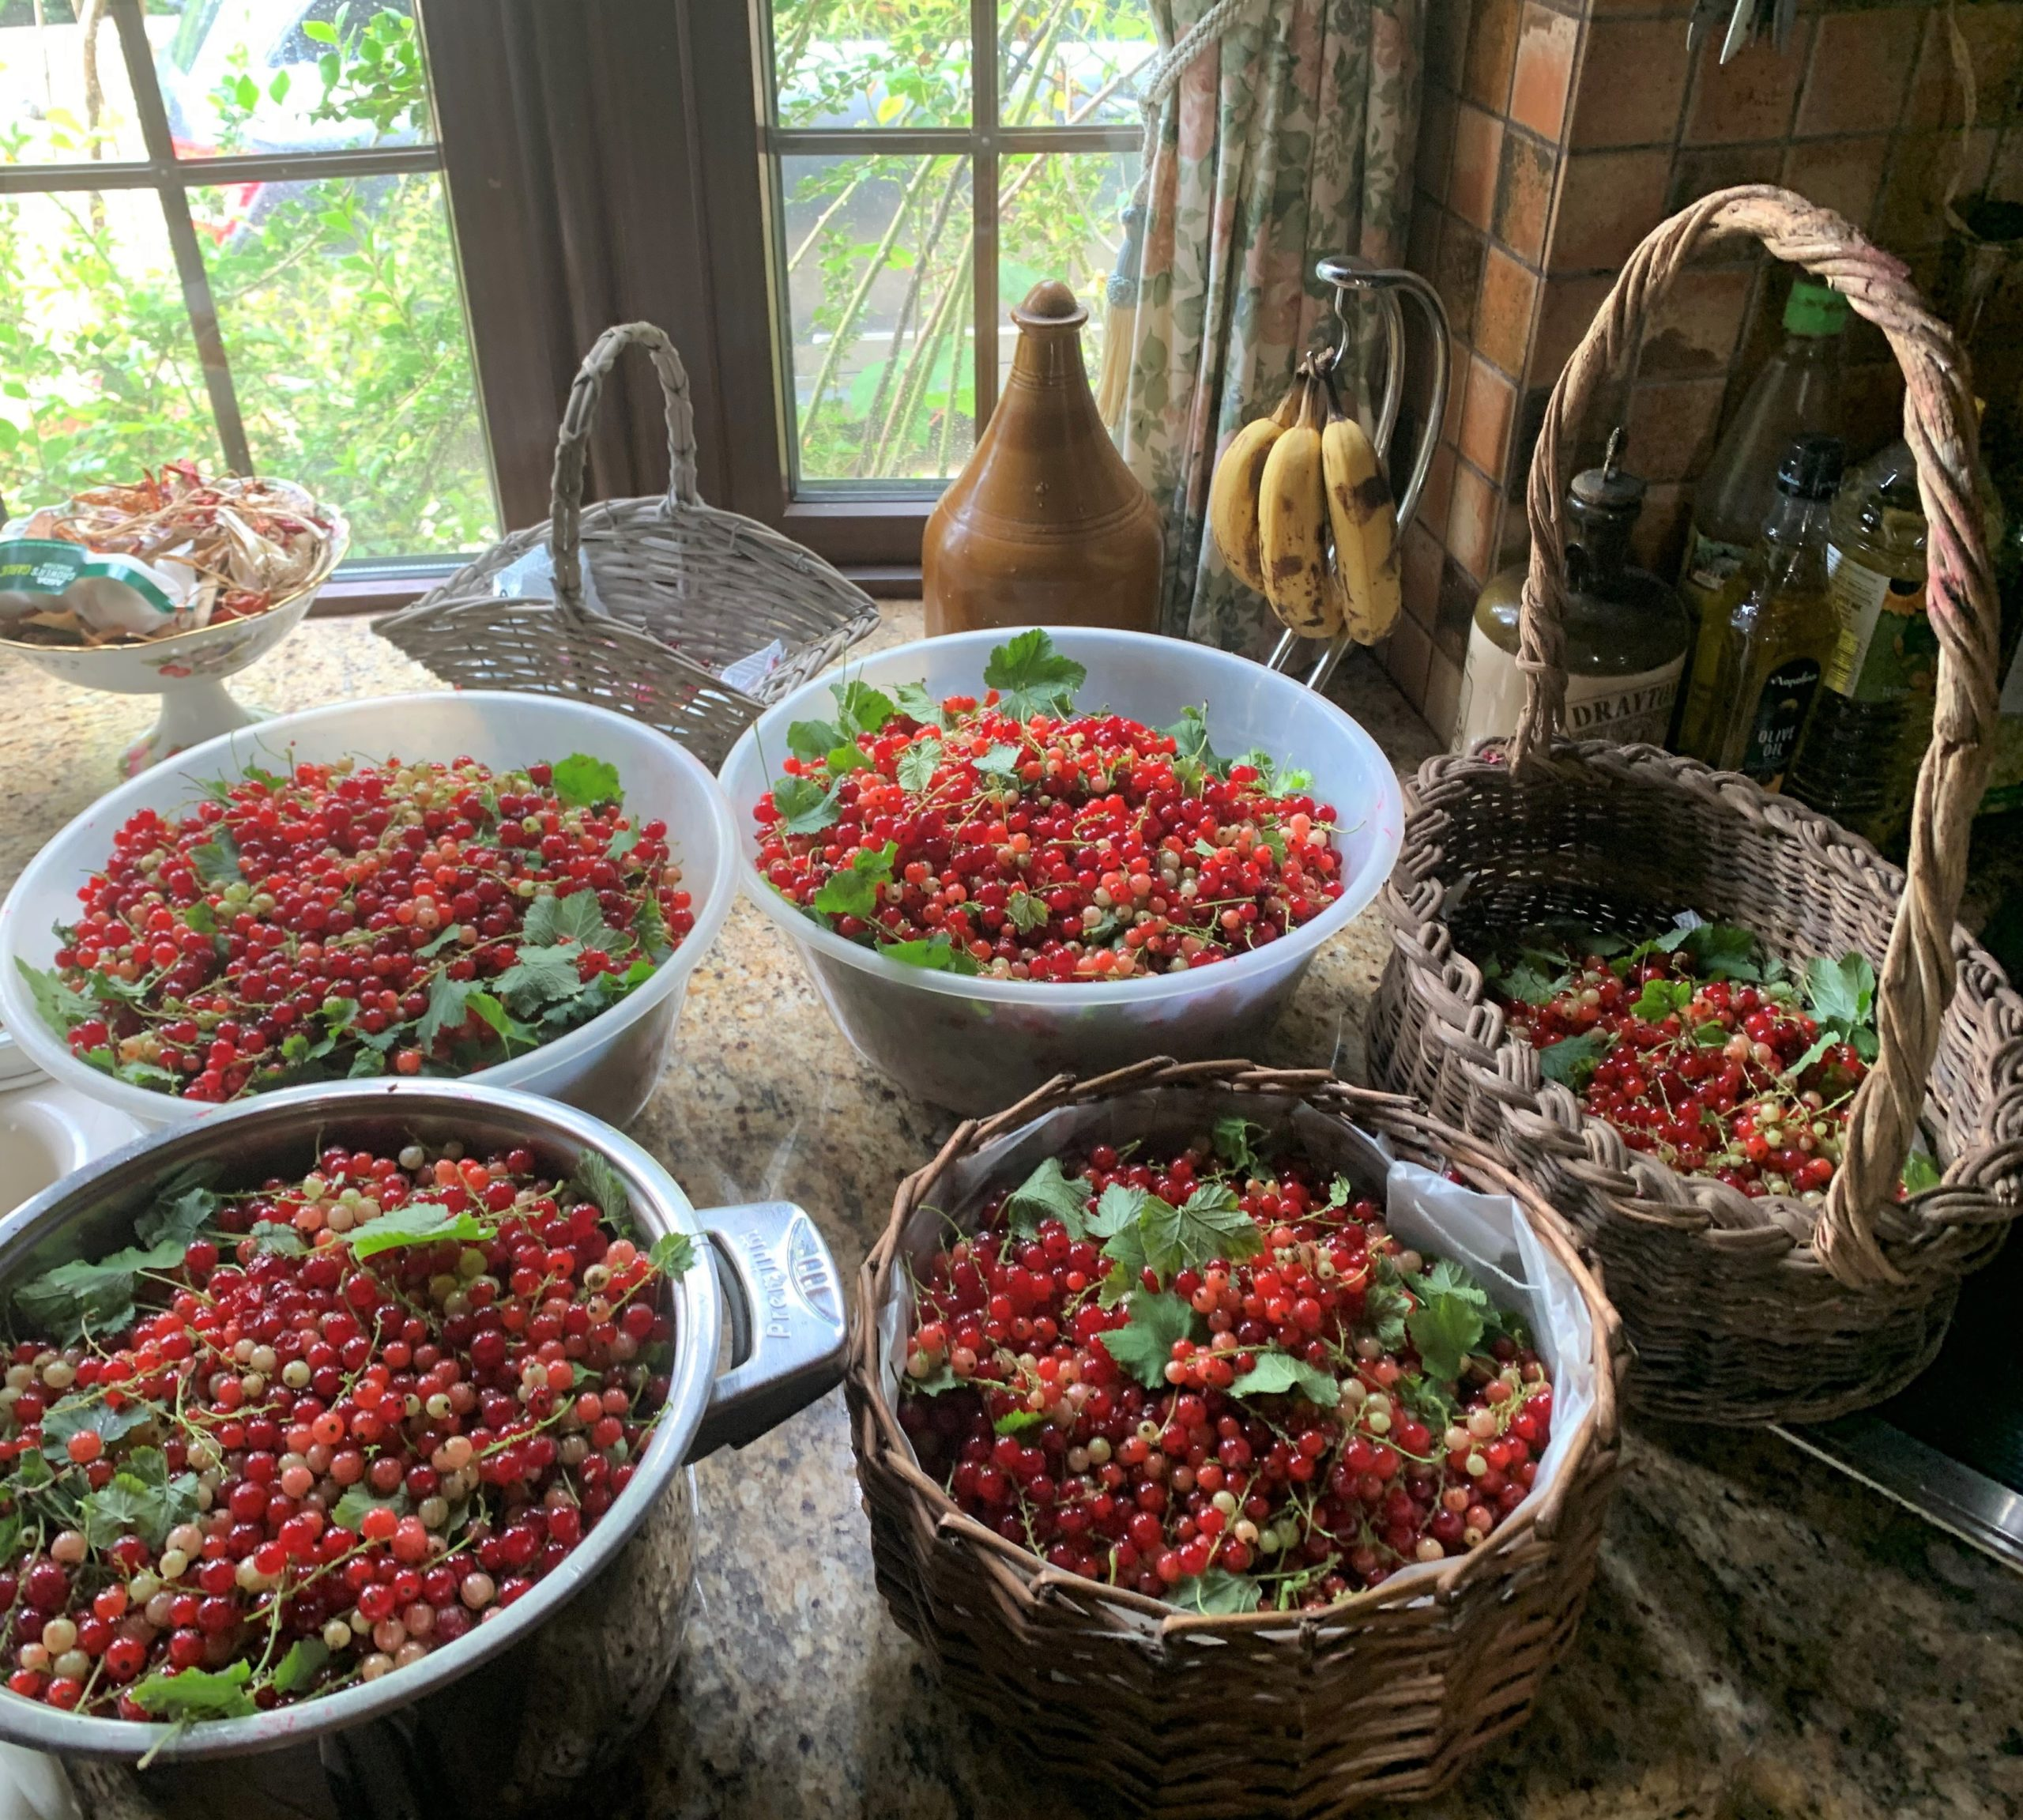 Red currant crop in our country kitchen